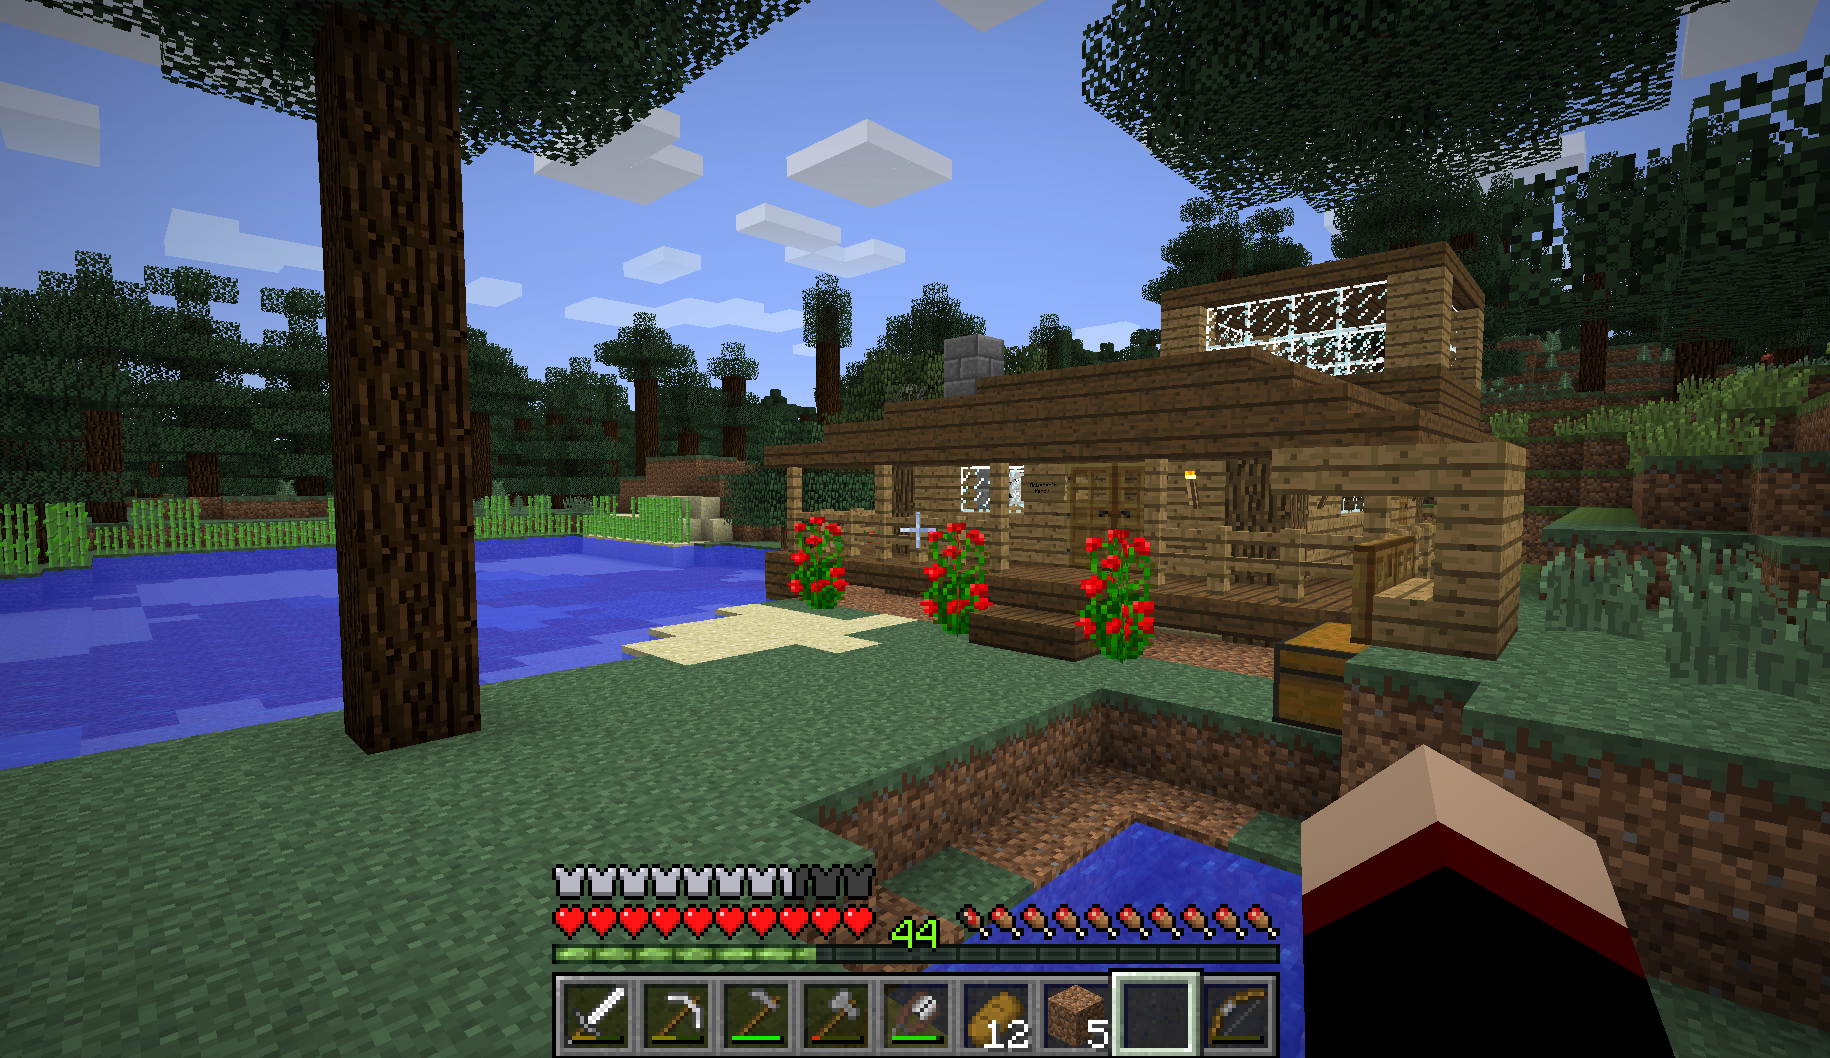 Plus belle maison sur minecraft l 39 impression 3d for Le monde de la maison